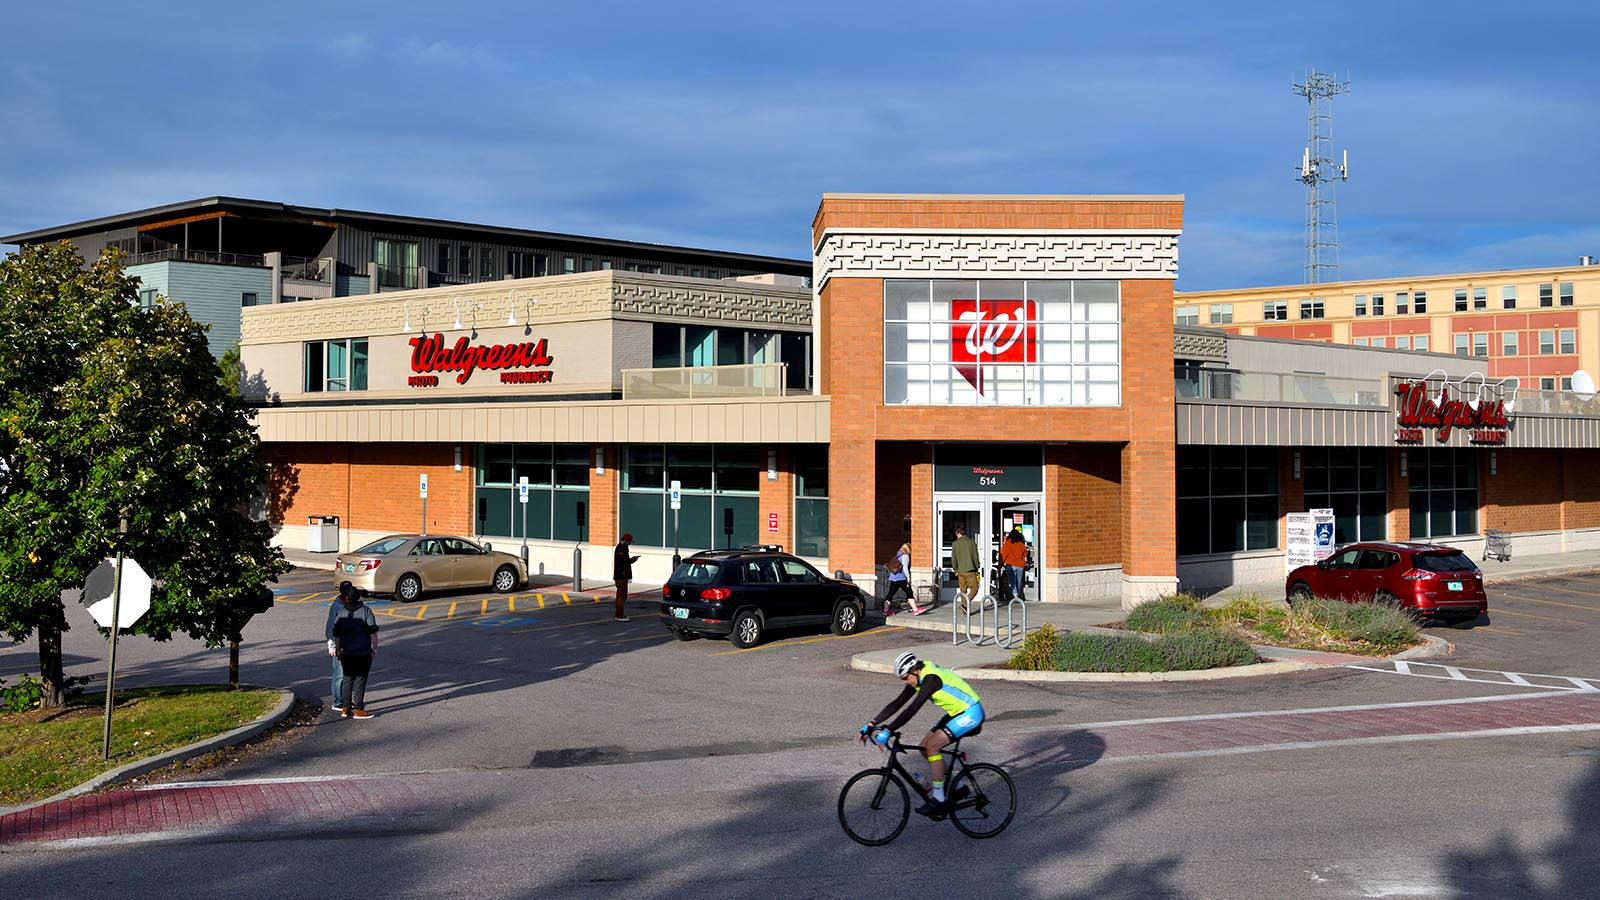 Walgreens Retail Property Investment